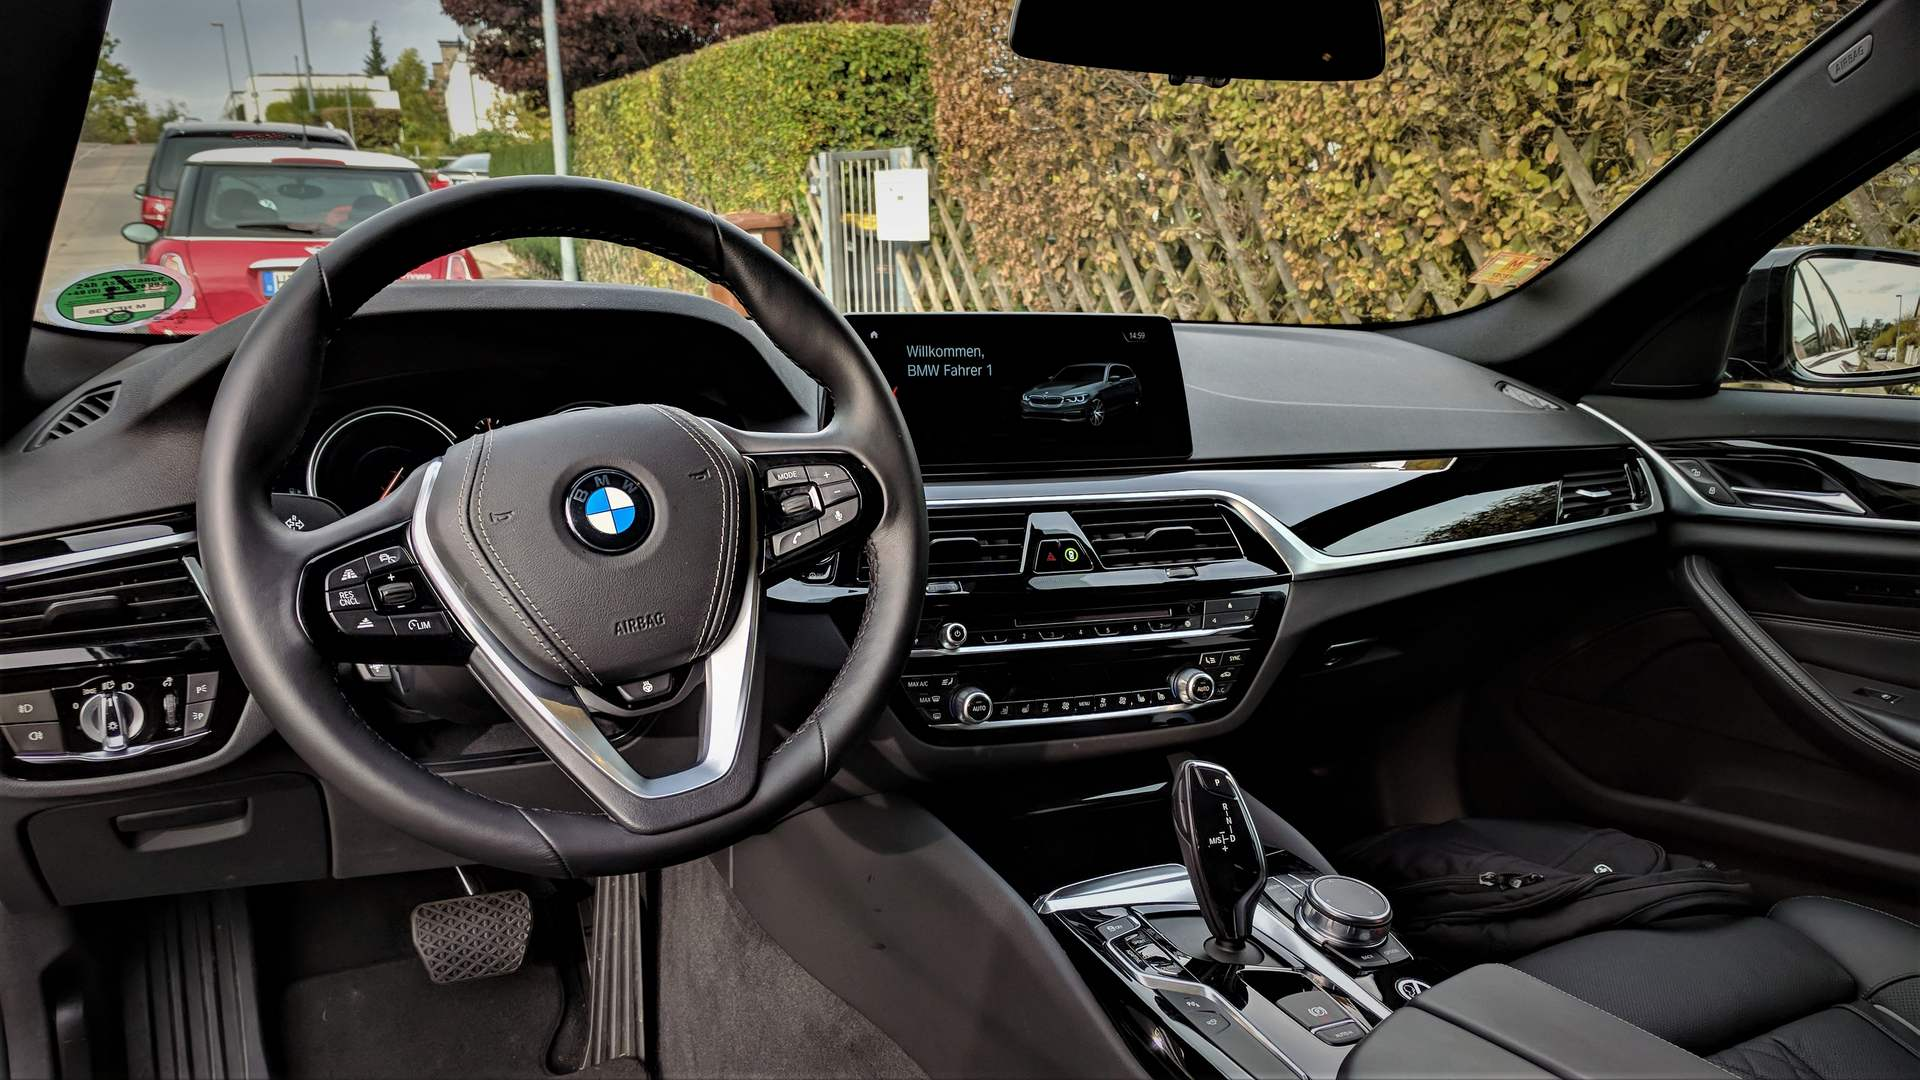 Sixt Karten Upgrades BMW 520